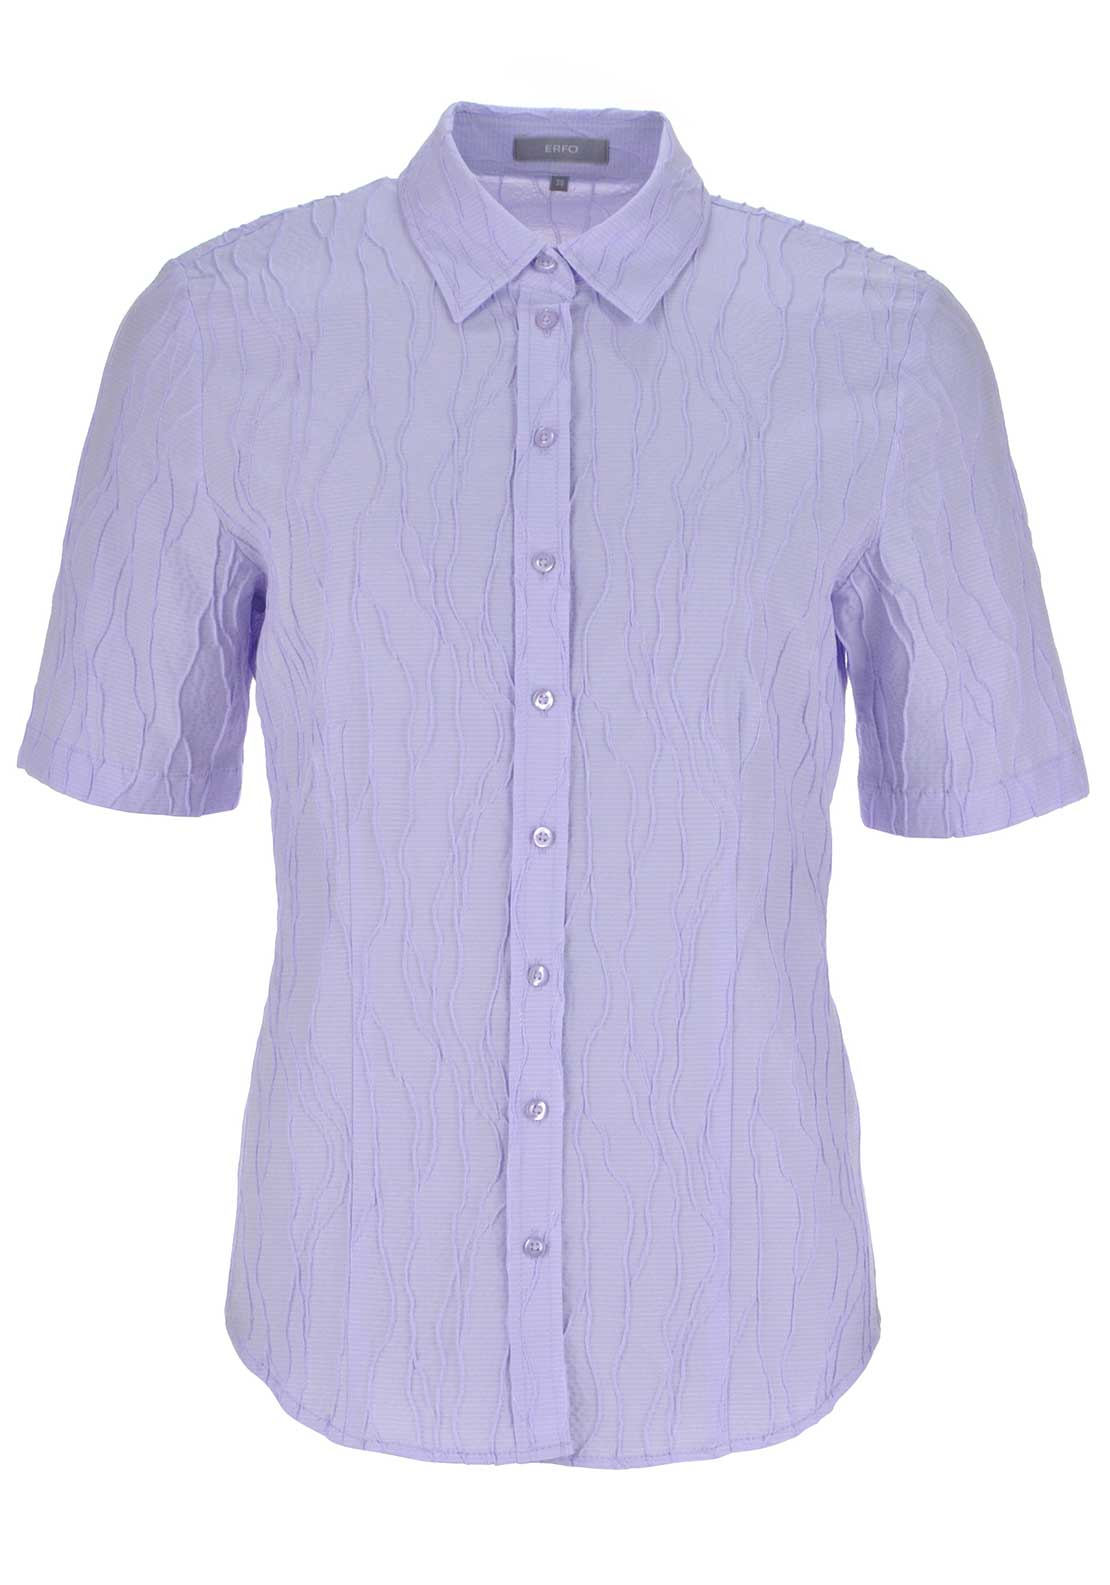 ERFO Embossed Print Short Sleeve Blouse, Lilac